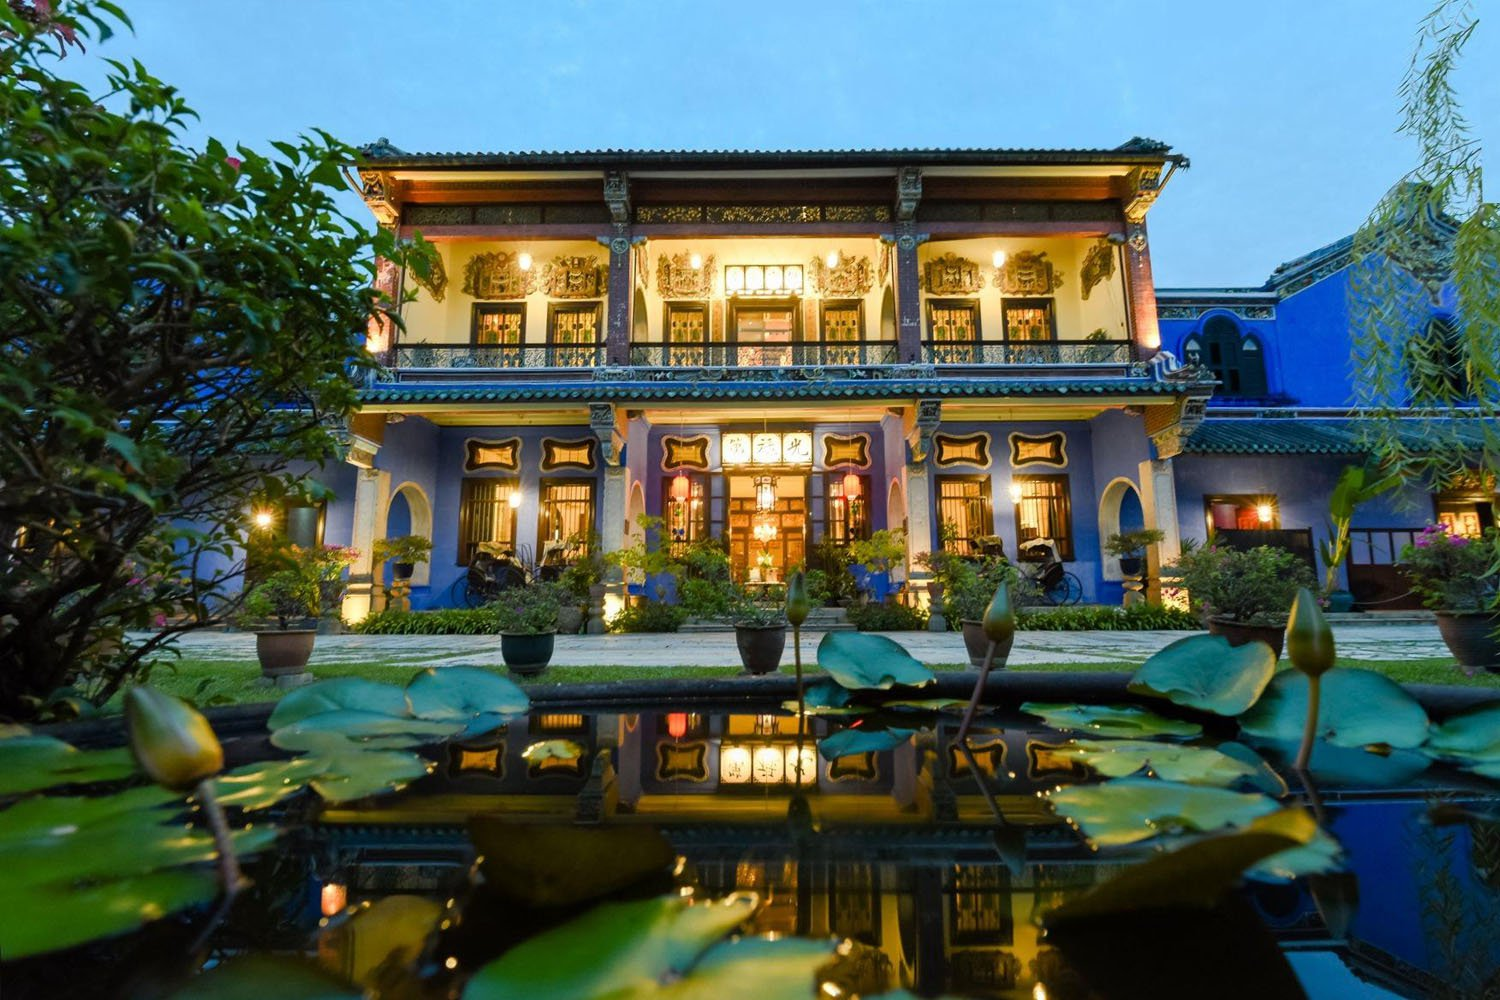 Cheong Fatt Tze - The Blue Mansion (Guided Tours), George Town